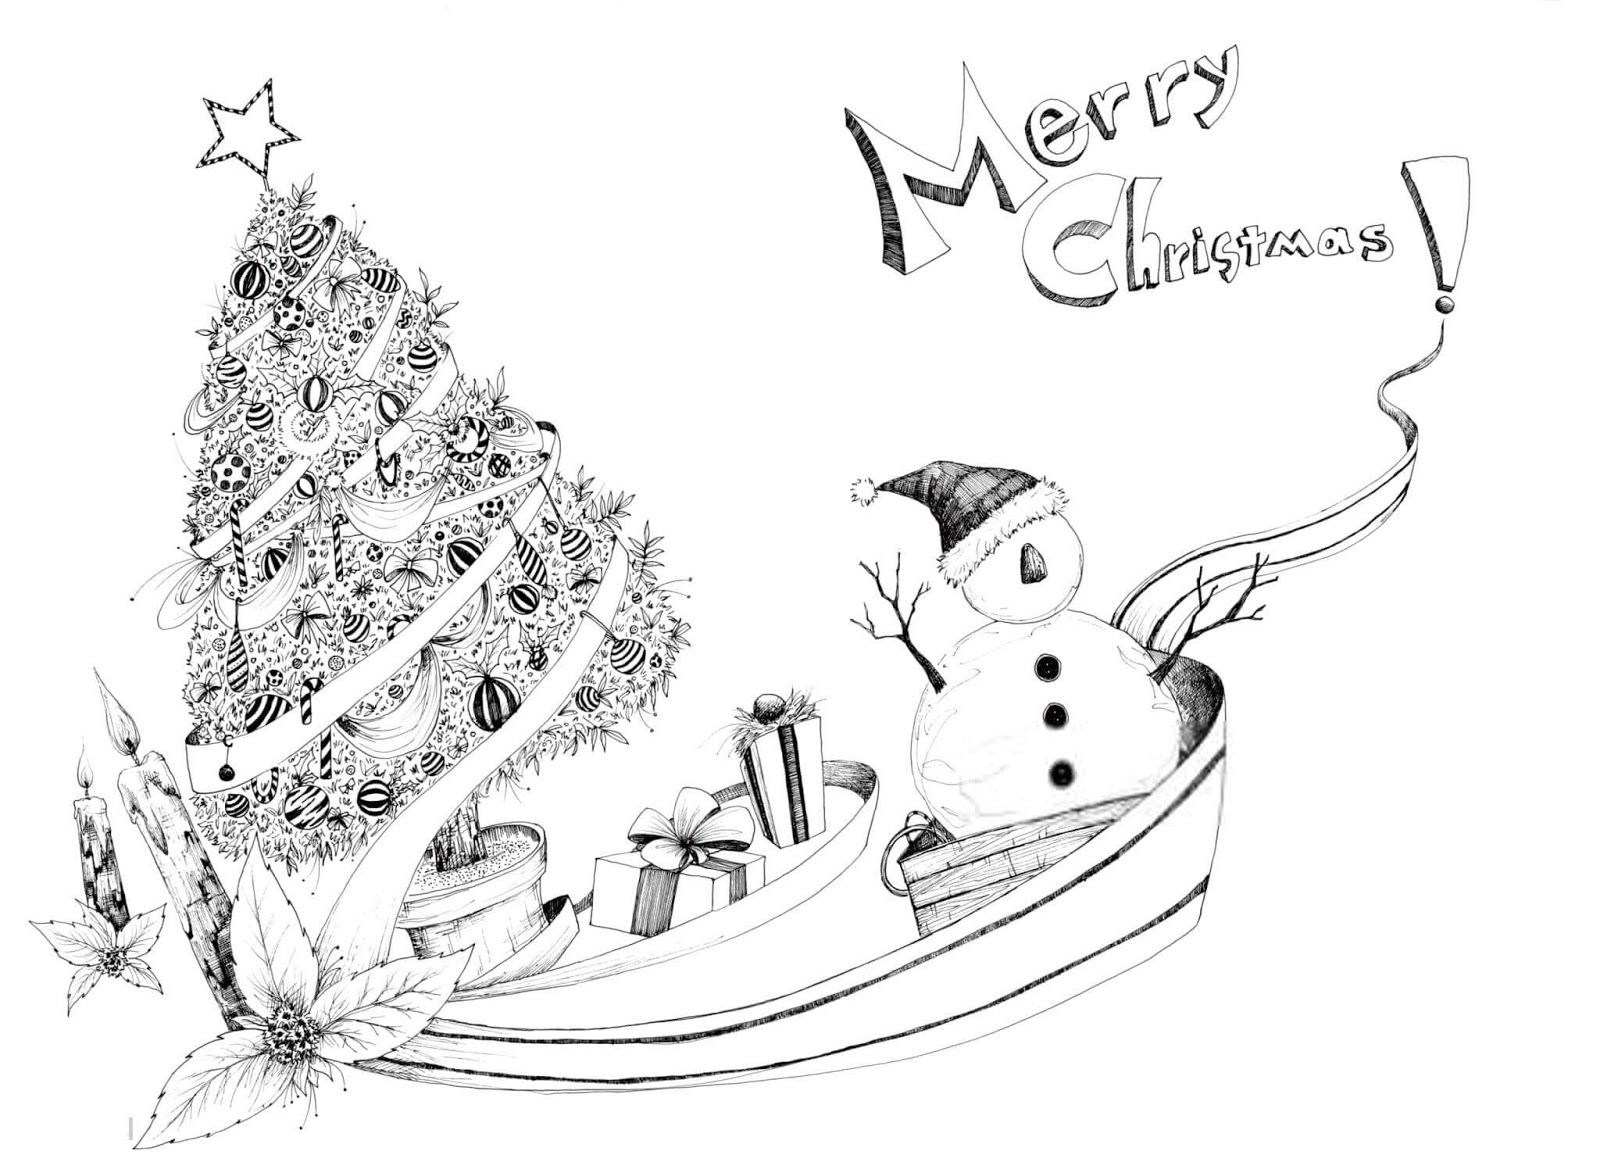 Merry Christmas Drawings Images to Print & Color Merry